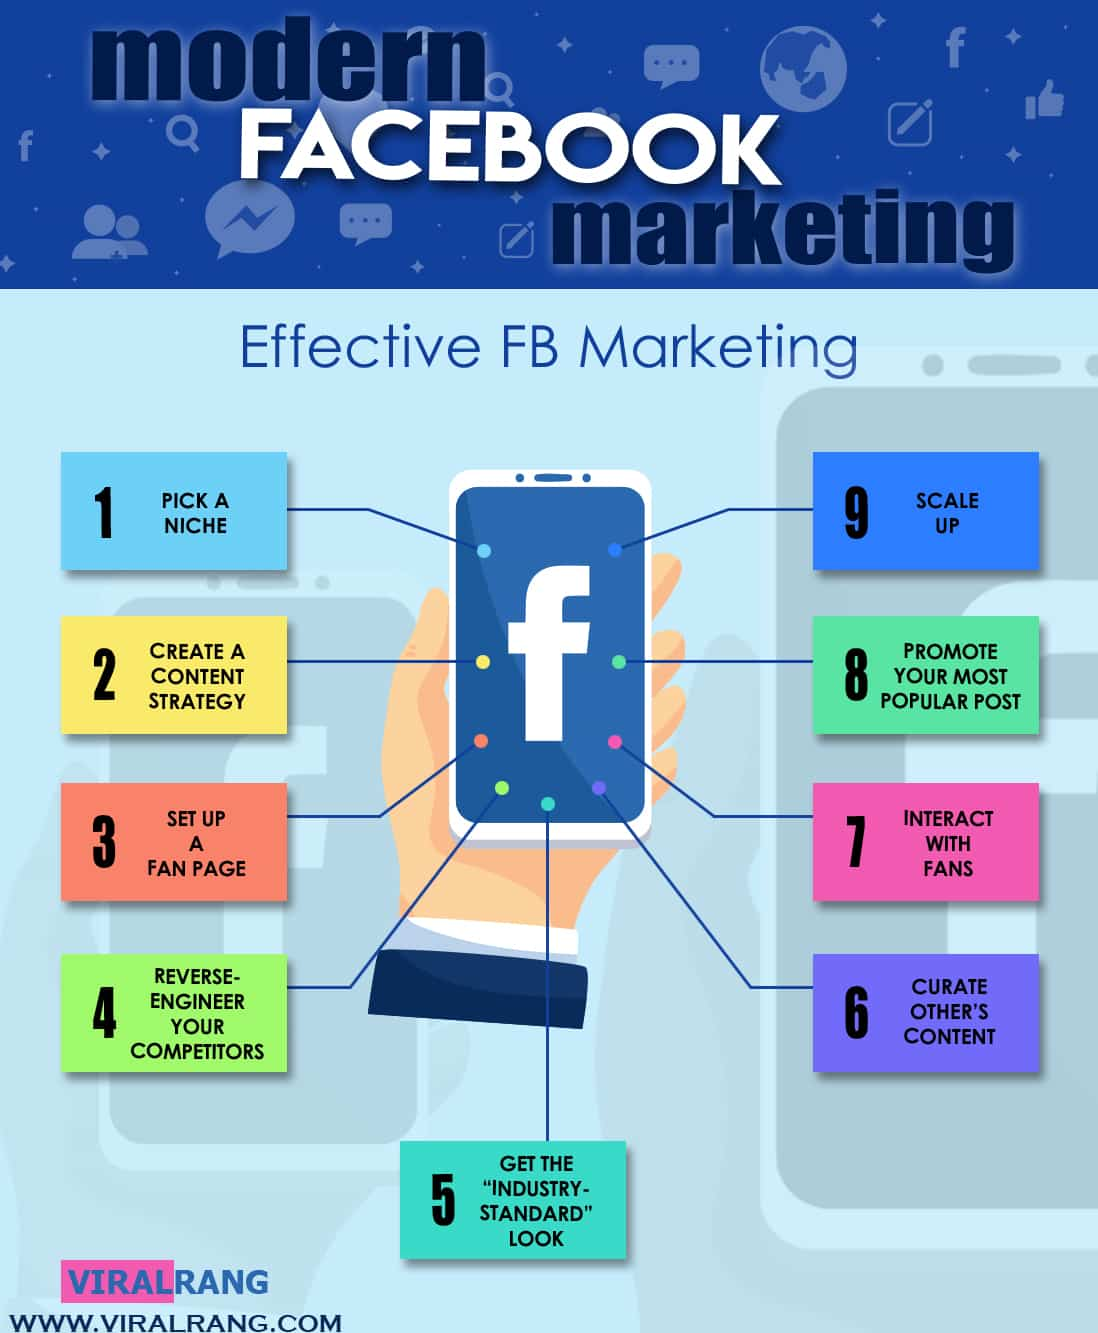 Modern Facebook Marketing Infographic